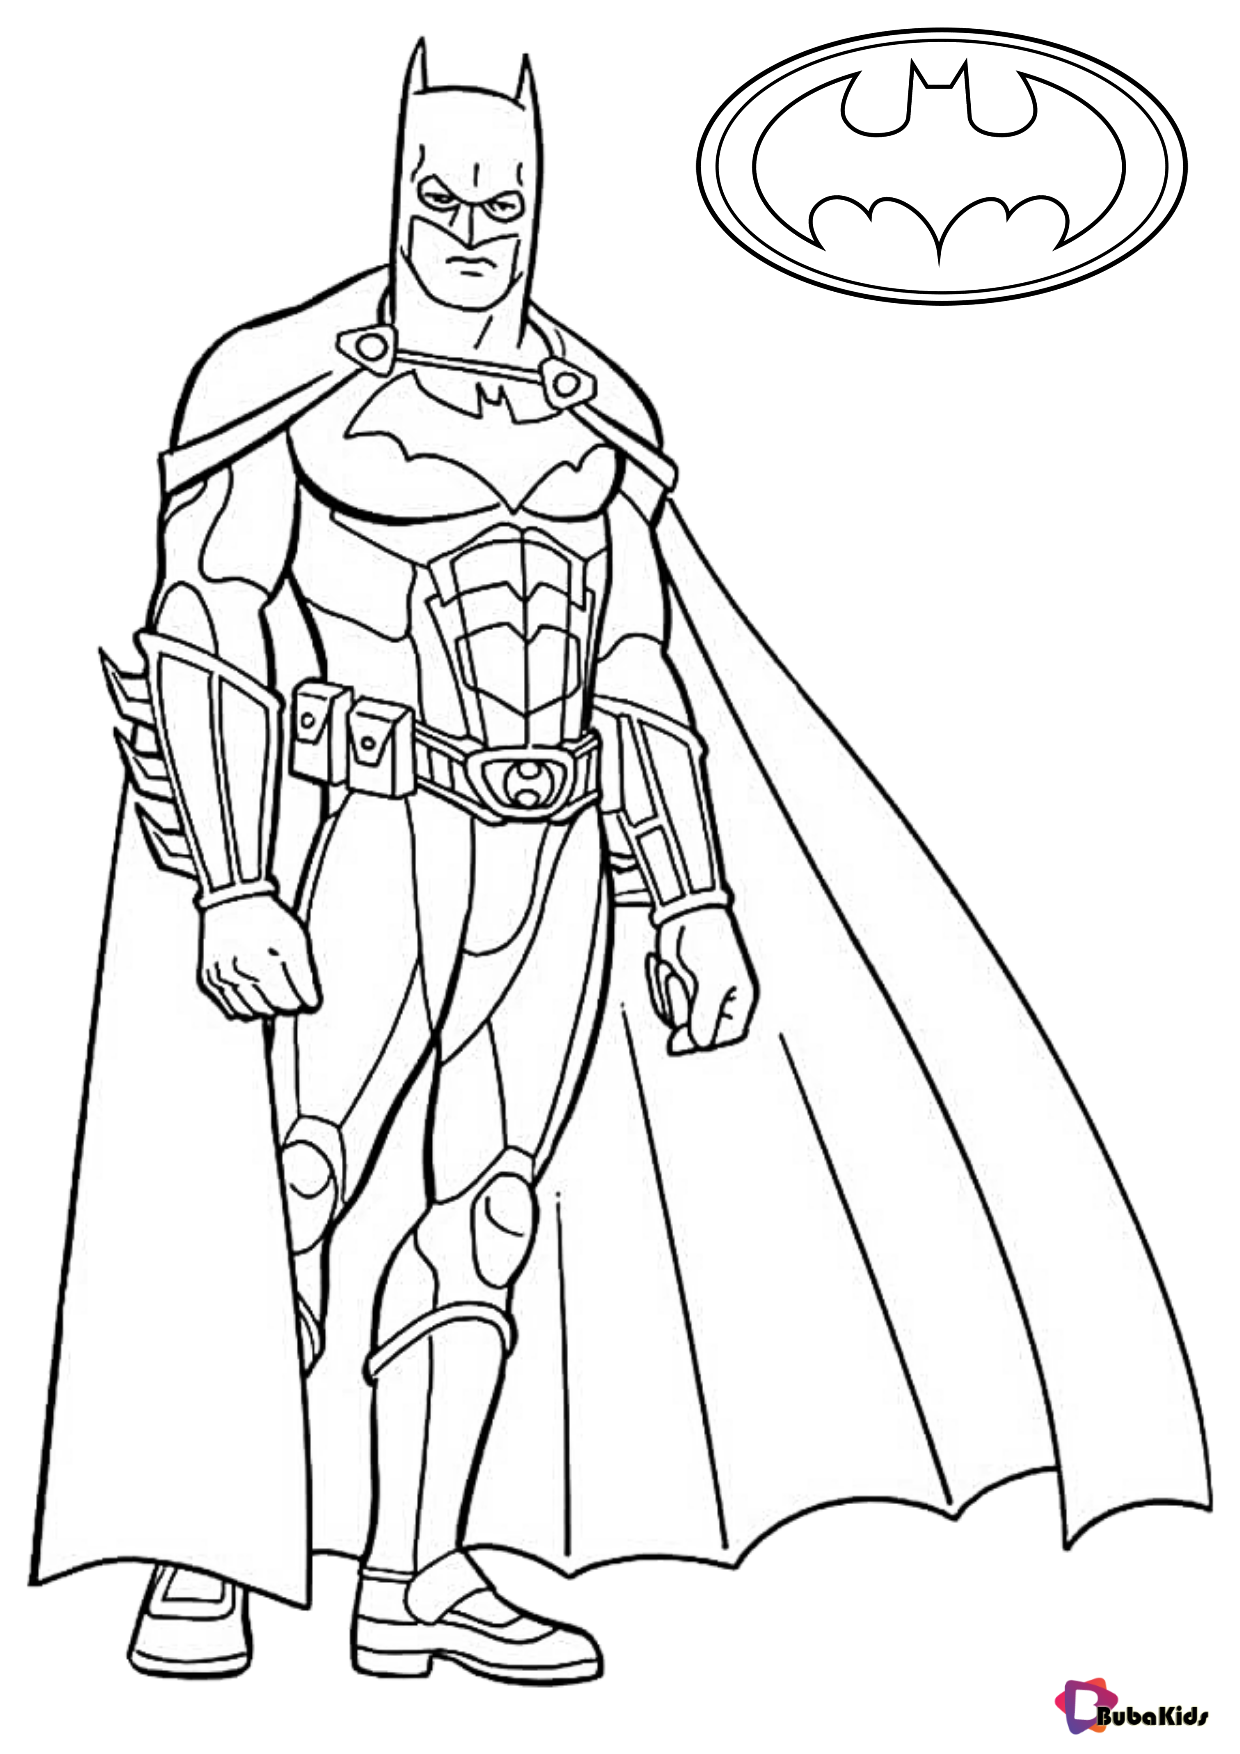 batman superman coloring pages free download batman superhero coloring sheet for kids batman superman pages coloring